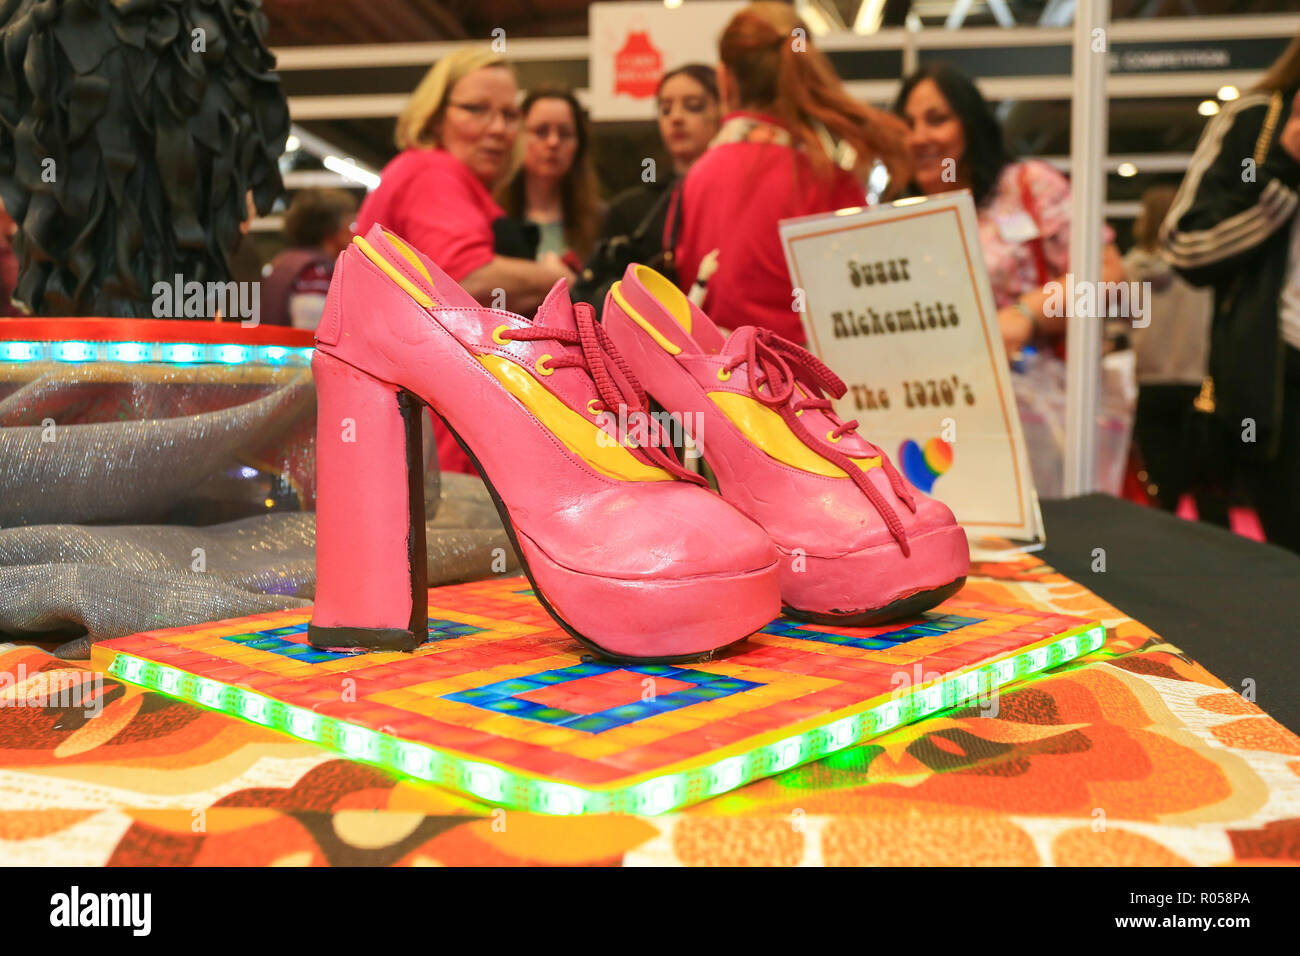 Birmingham, UK. 2nd November, 2018. The opening day of the 25th Cake International Show at the NEC in Birmingham. Hundreds of exhibitors show off their skills in sugar and cake. Nostalgia for the 1970s is shown in a pair of ourageous platform shoes.  Peter Lopeman/Alamy Live News - Stock Image